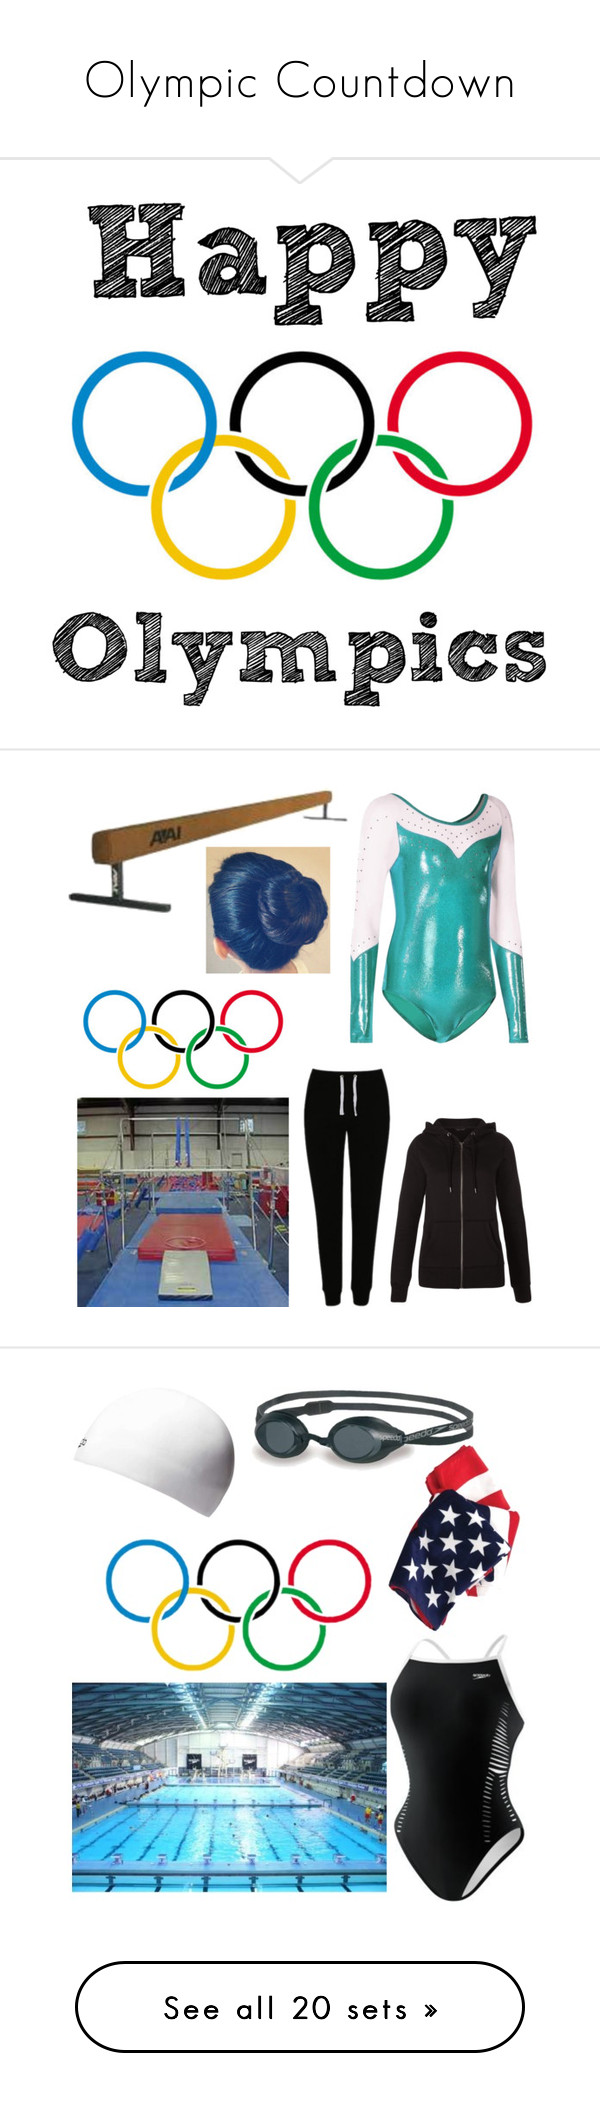 """""""Olympic Countdown"""" by audjshaw ❤ liked on Polyvore featuring art, George, New Look, Speedo, Ralph Lauren, Saucony, Dorothy Perkins, Dunlop, Antigua and Tonic"""